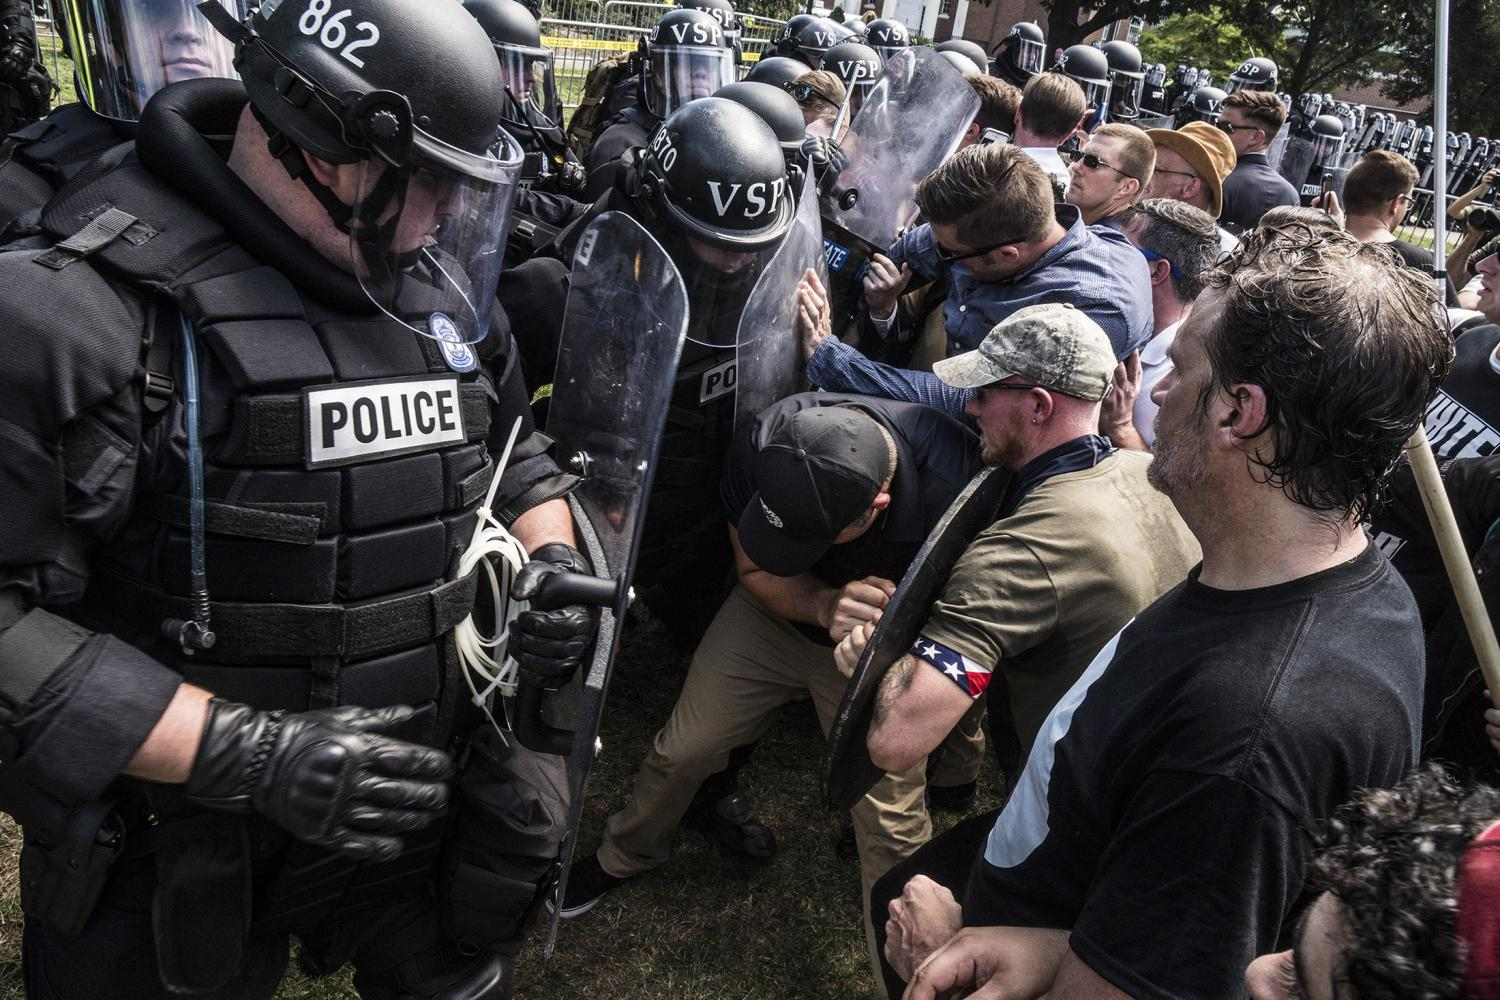 Riot police and alt-right rally members clash on Saturday Aug. 12, 2017 in Lee Park in Charlottesville, Va.